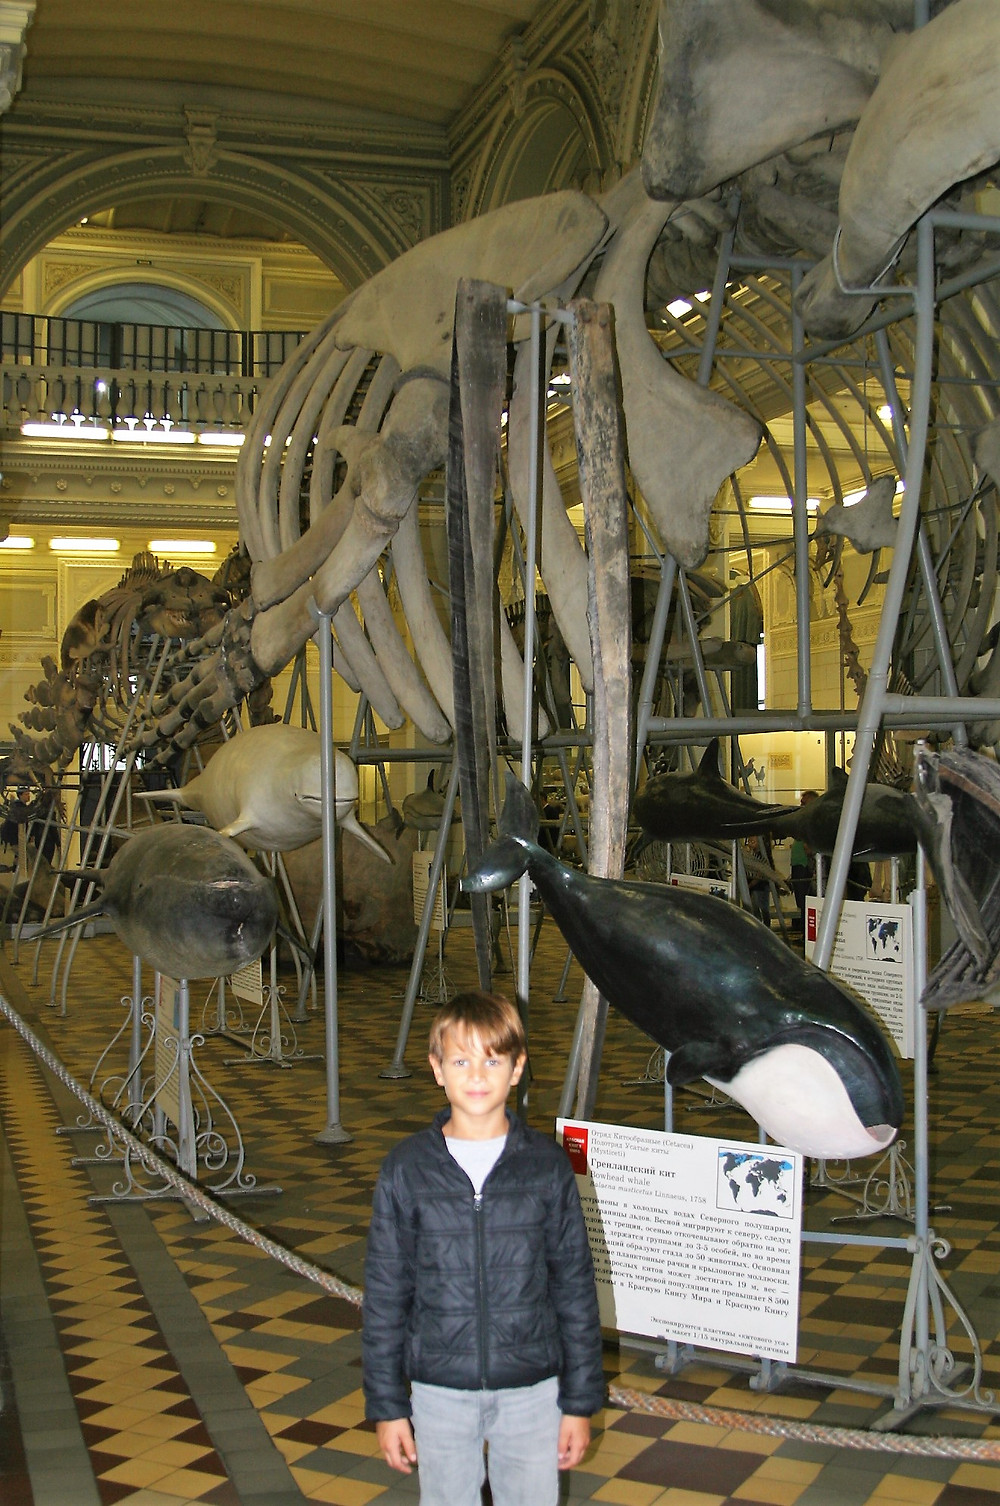 In the entrance hall, stands a giant blue whale skeleton.